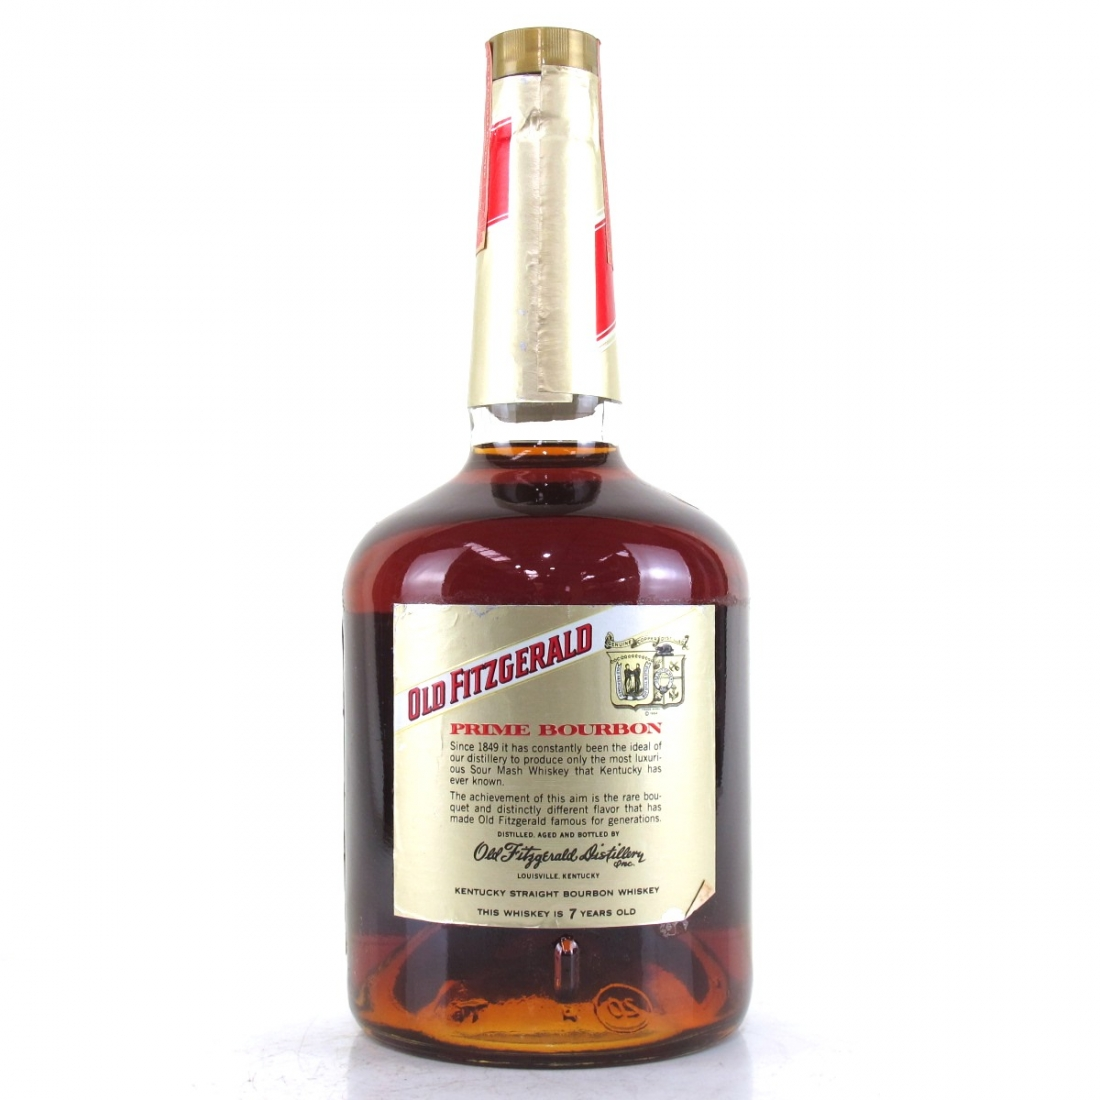 Old Fitzgerald 7 Year Old Prime Bourbon 1 Litre 1970s